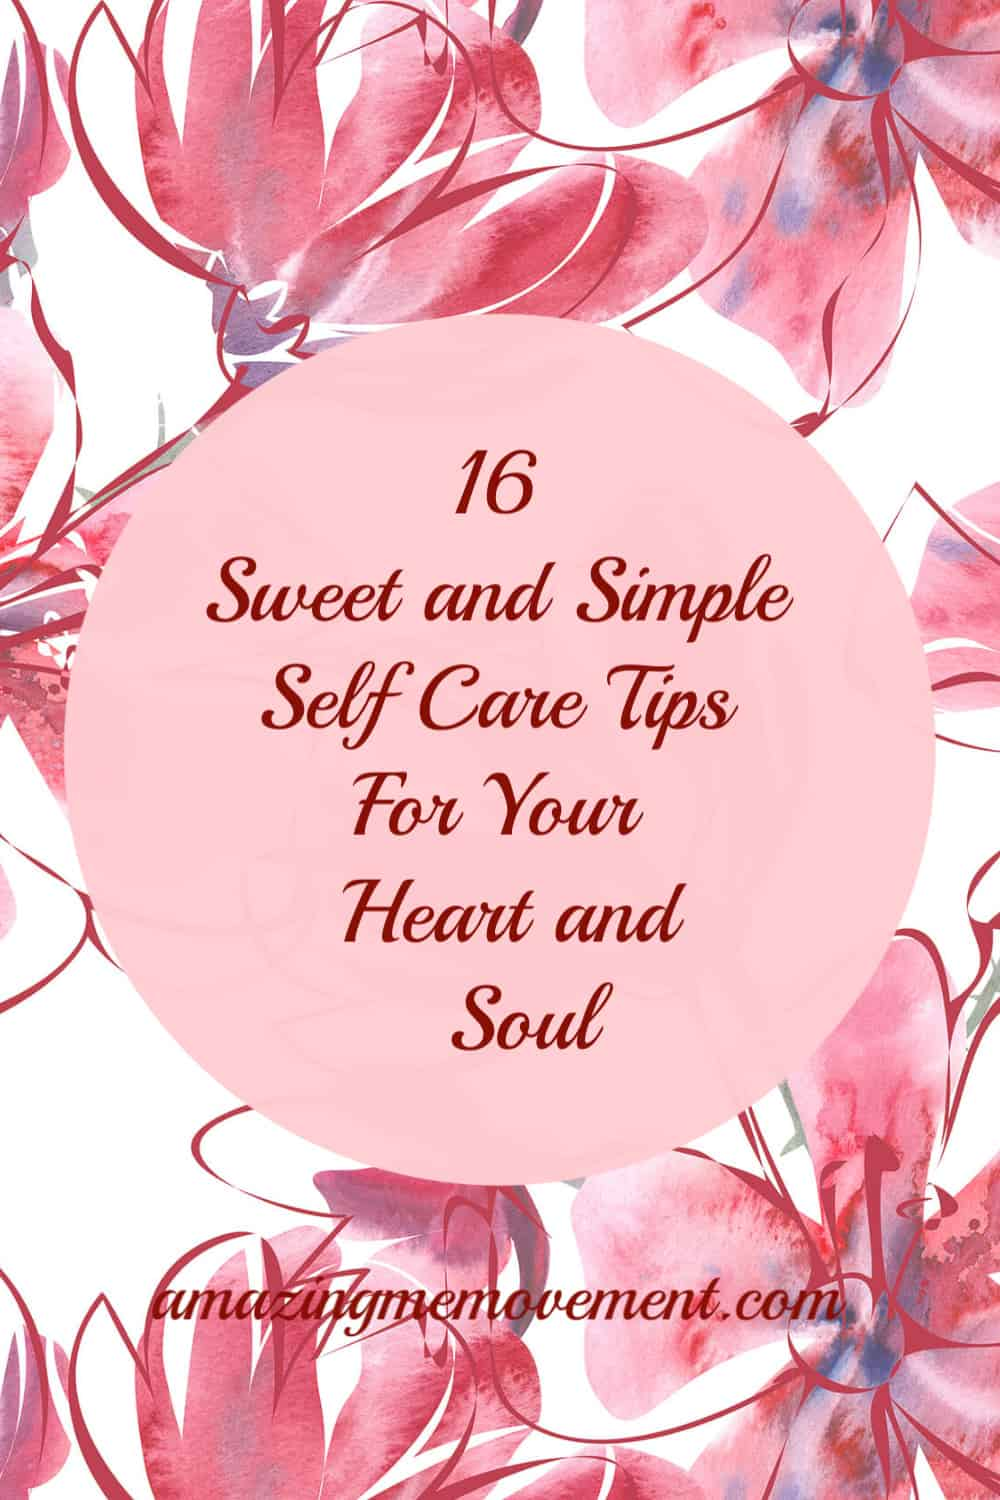 16 Sweet and simple self care tips for your heart and soul